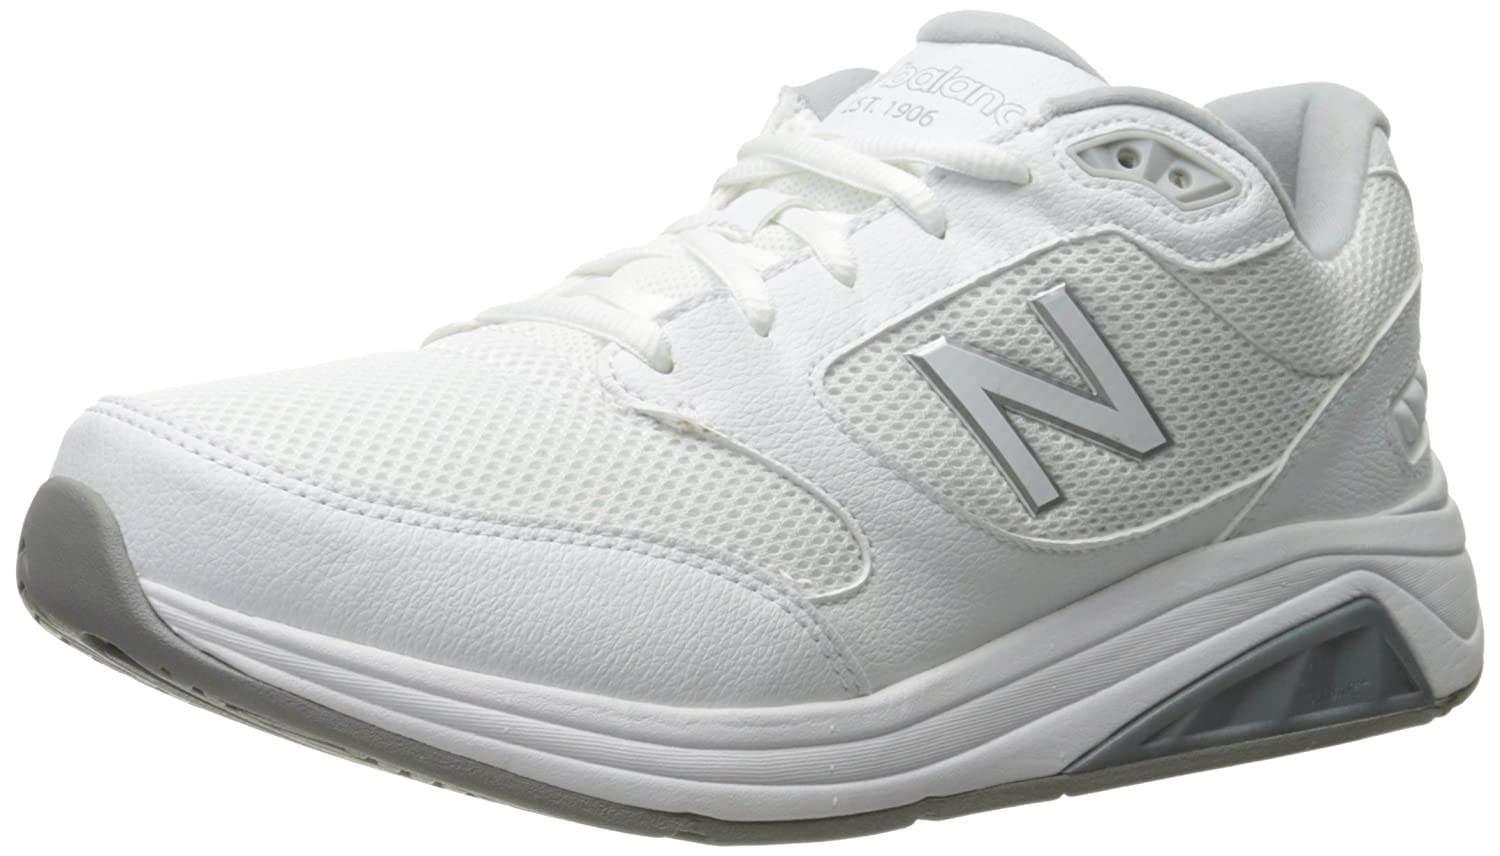 New Balance Men's Mens 928v3 Walking Shoe Walking Shoe 10.5 6E US|White/White